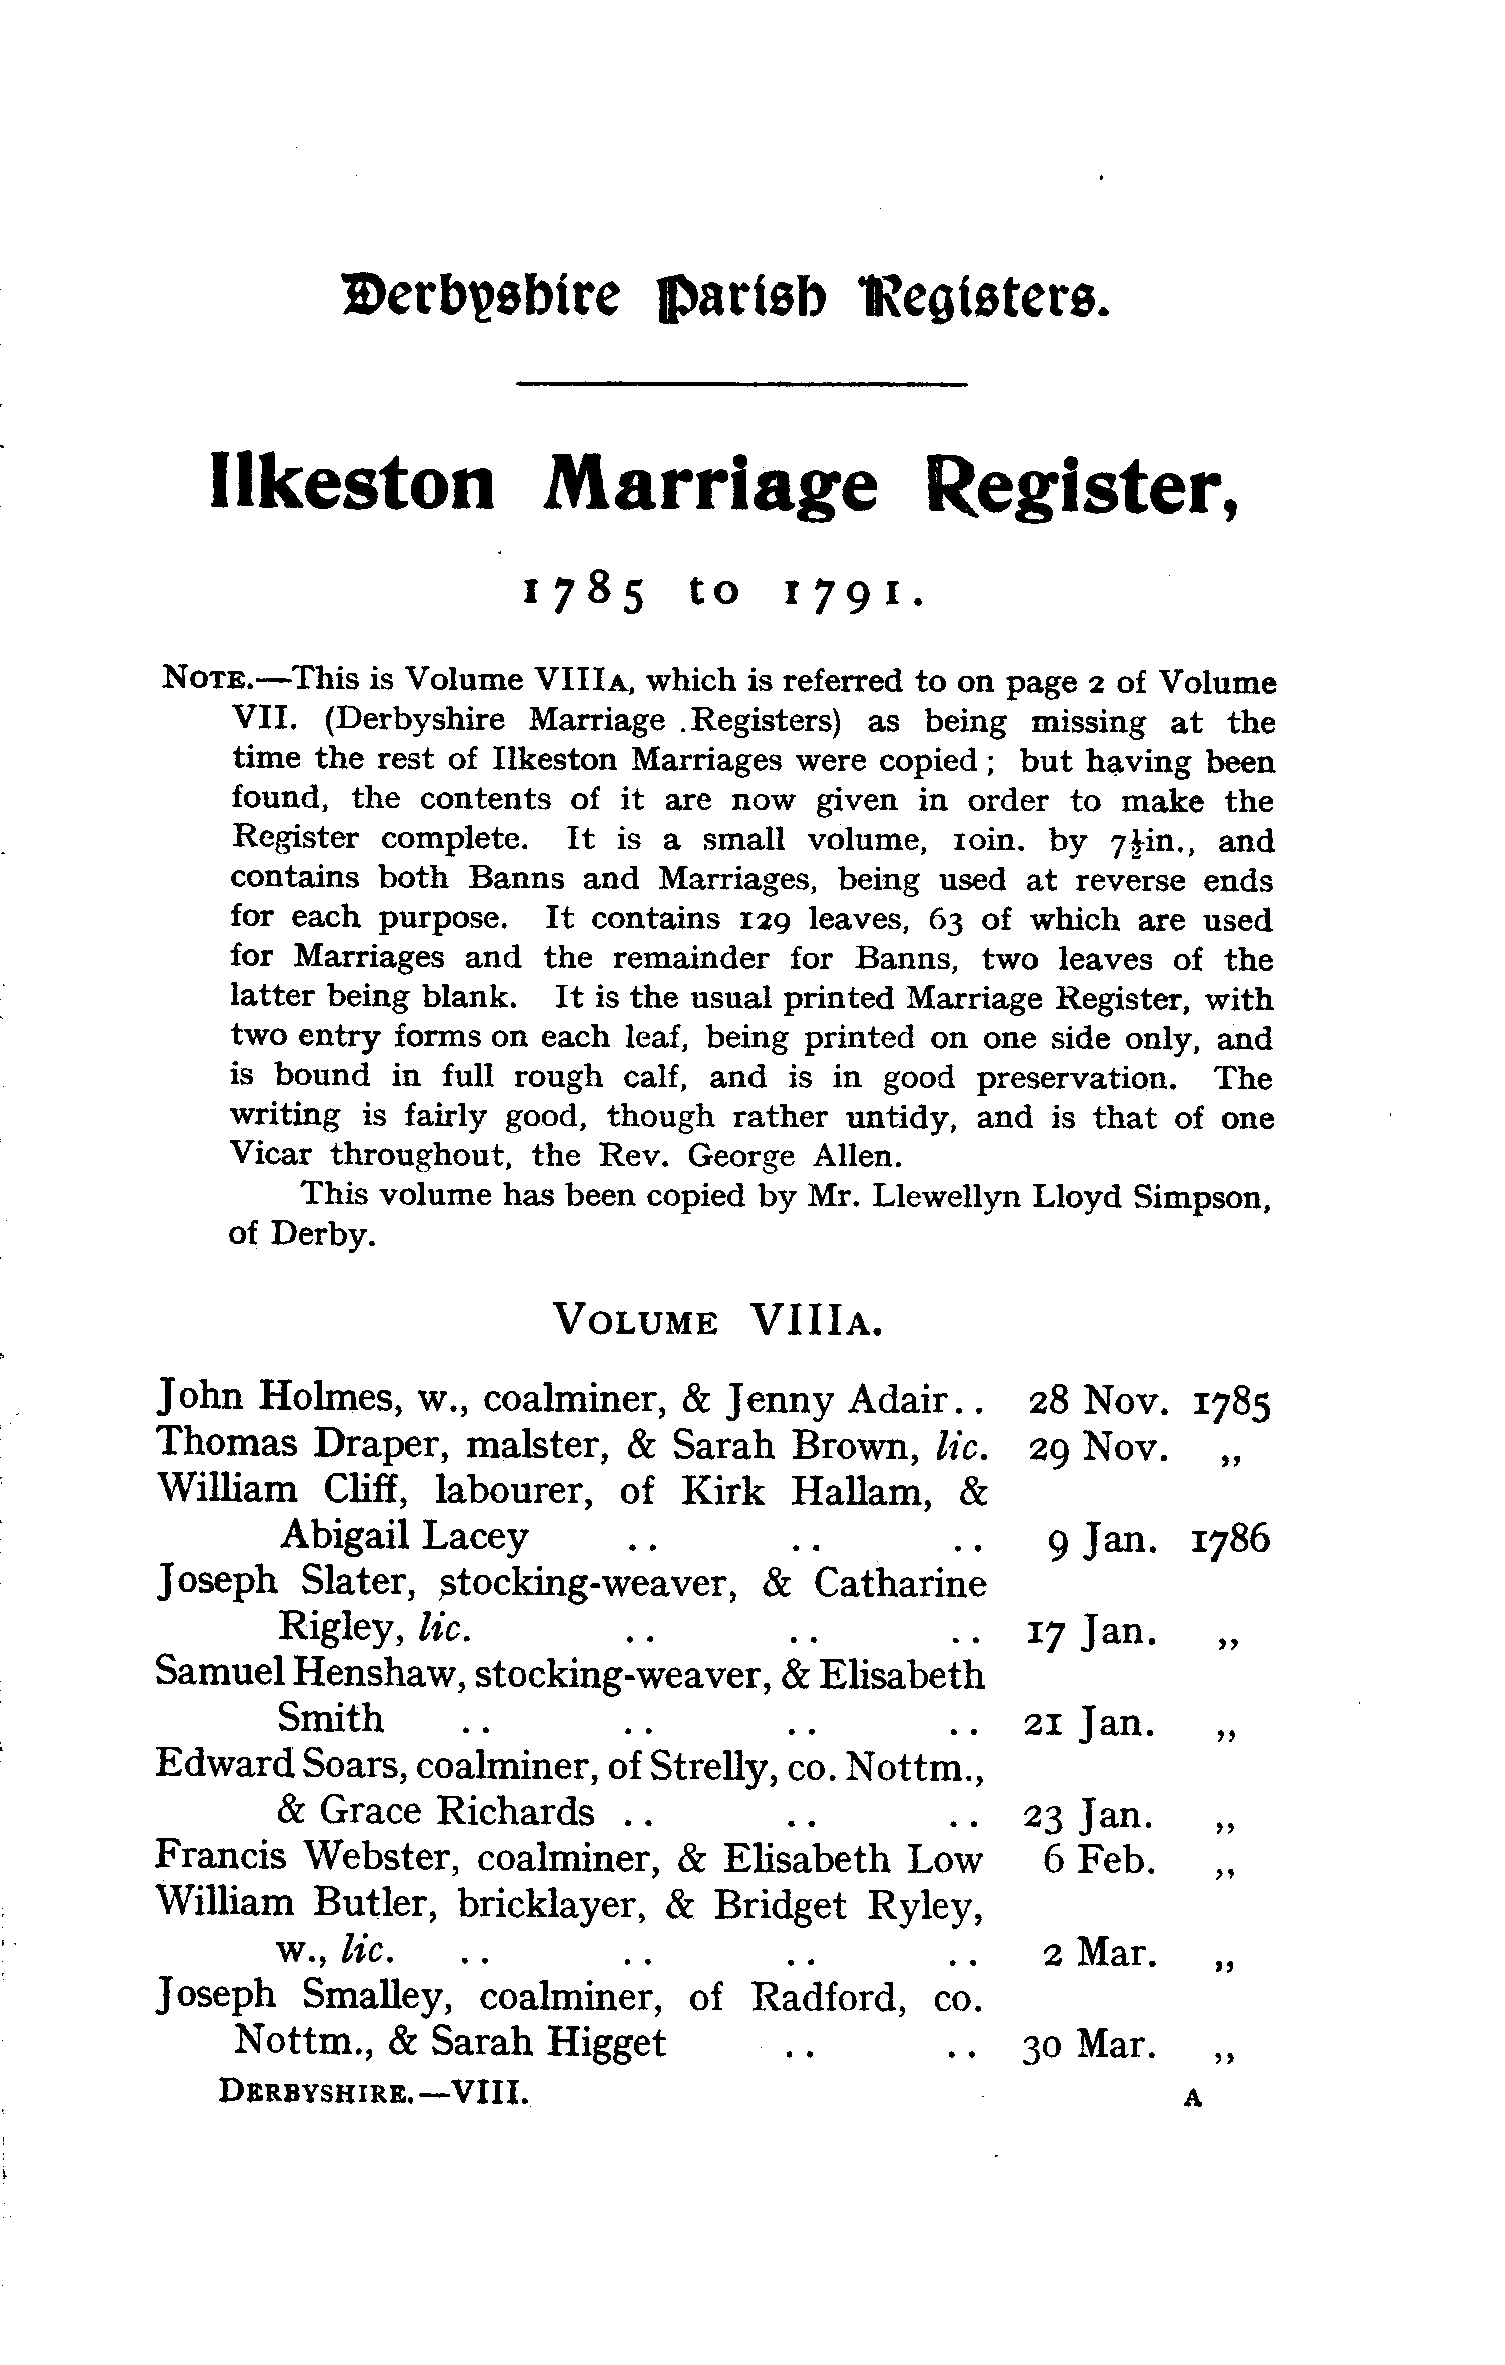 Derbyshire Parish Registers - Marriages volume 8 page 1 - click to open larger version in a new window